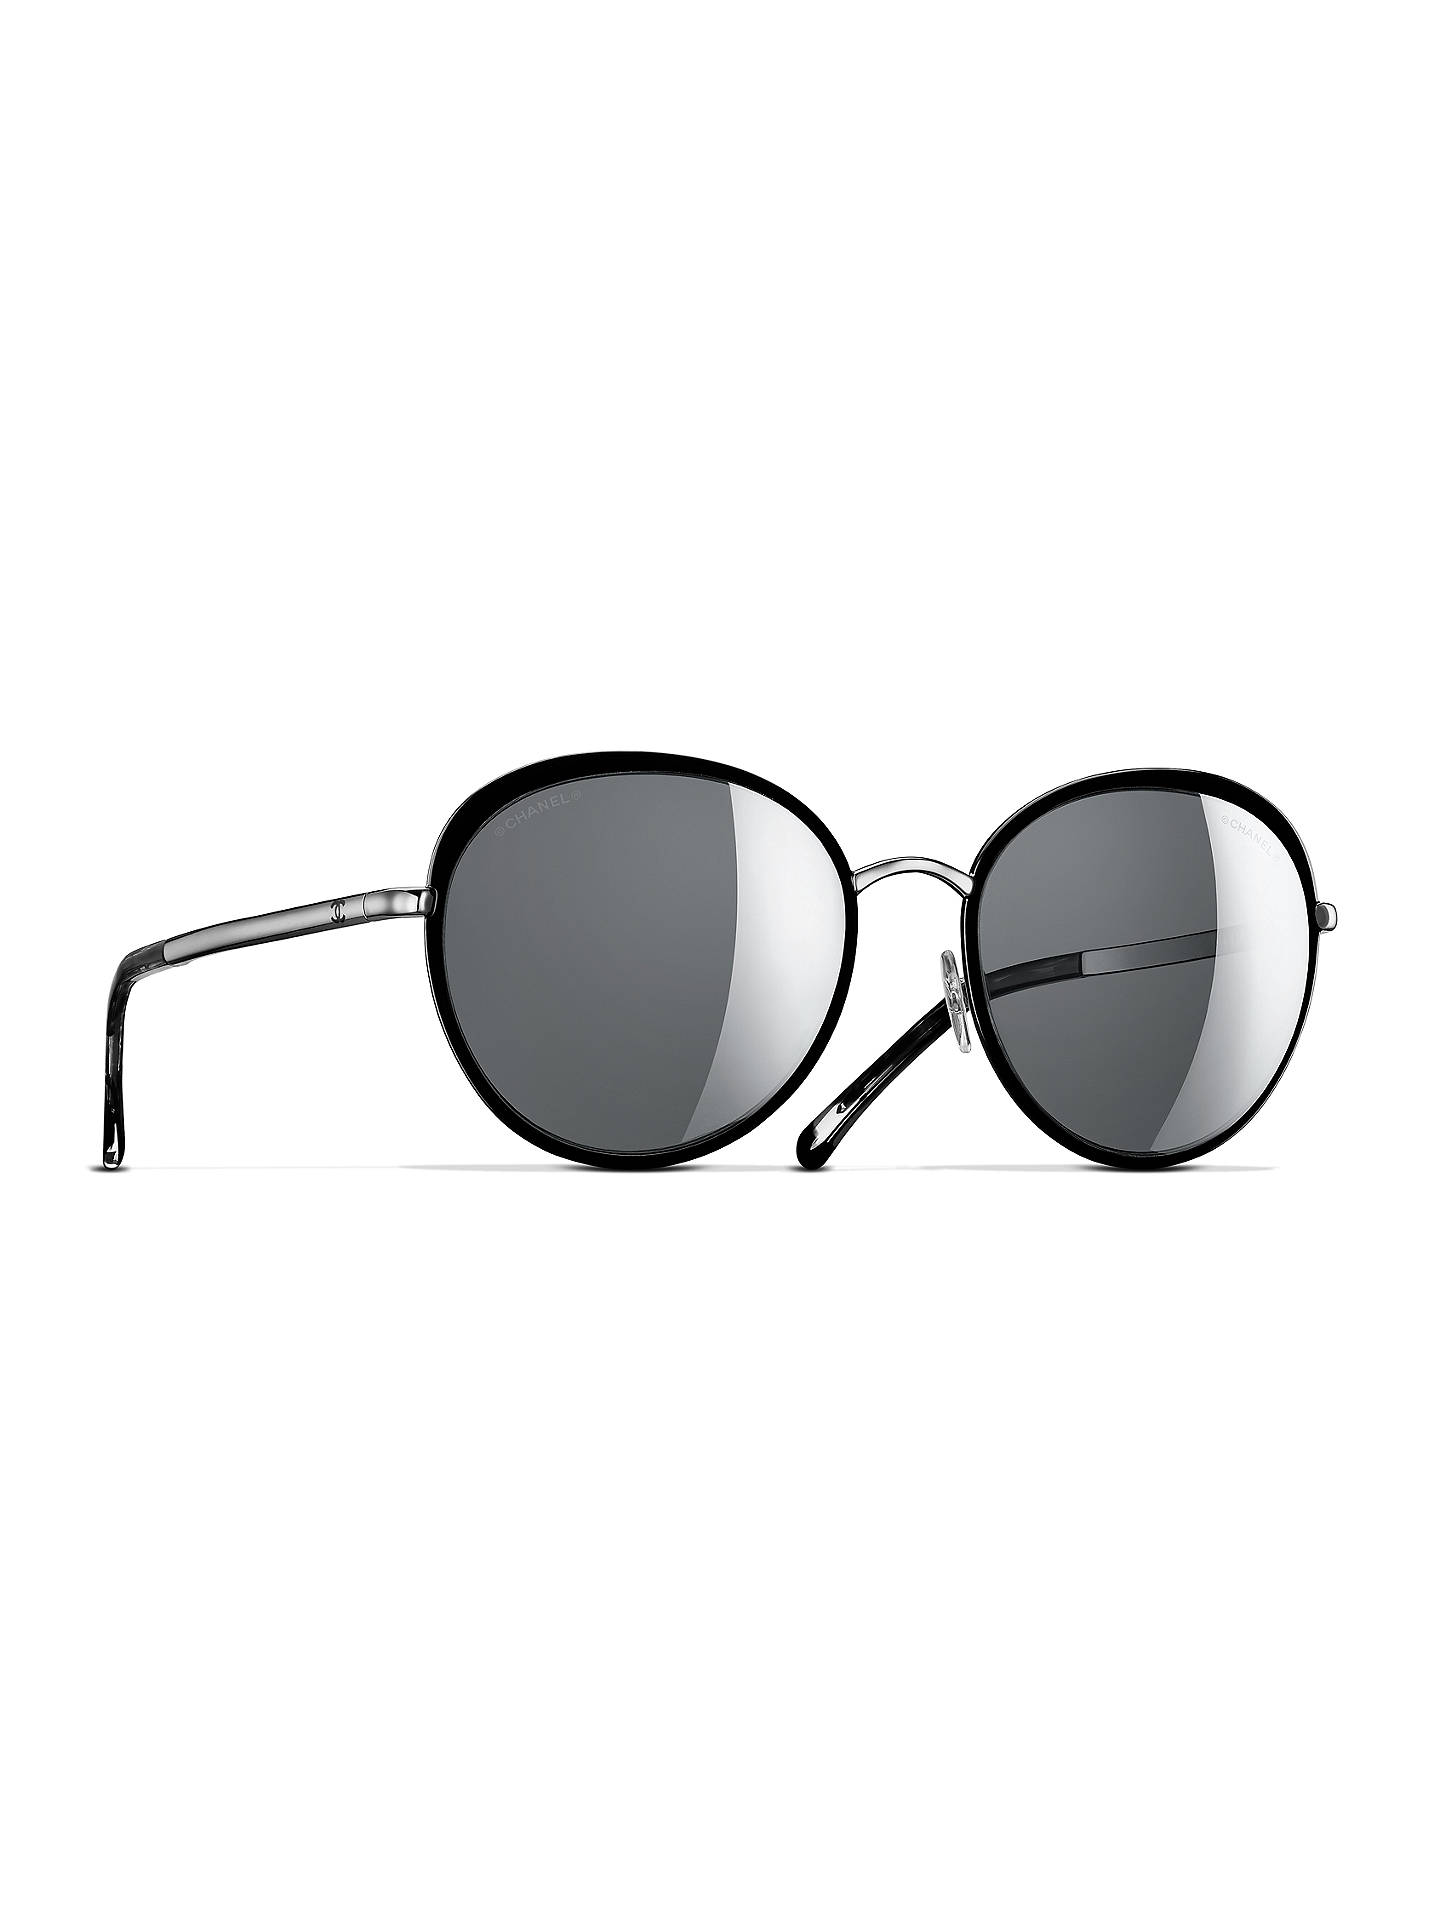 60484d1dd5 BuyCHANEL Round Sunglasses CH4206 Black Silver Online at johnlewis.com ...